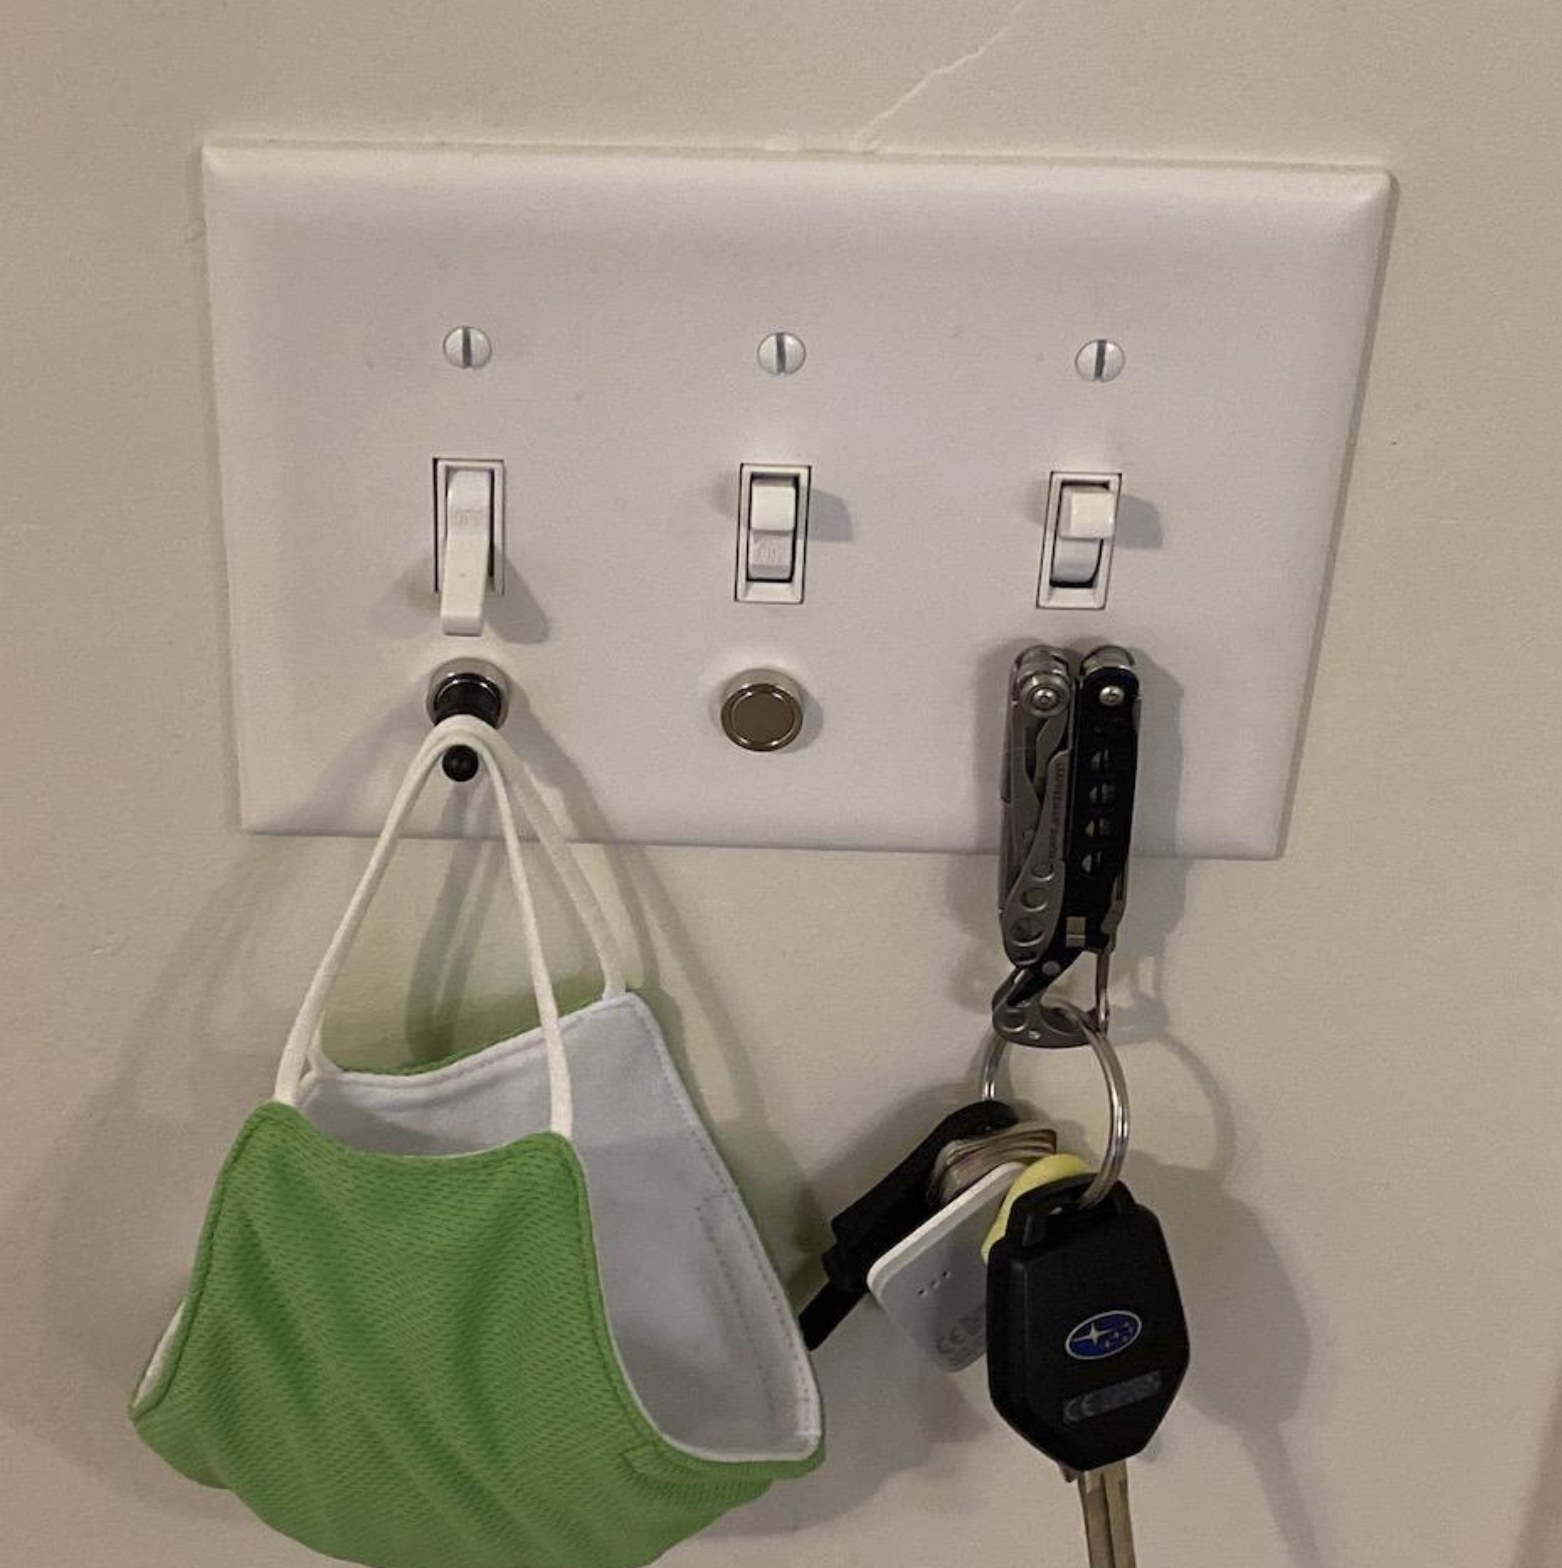 reviewer photo showing their keys and mask hanging from the magnetic rack